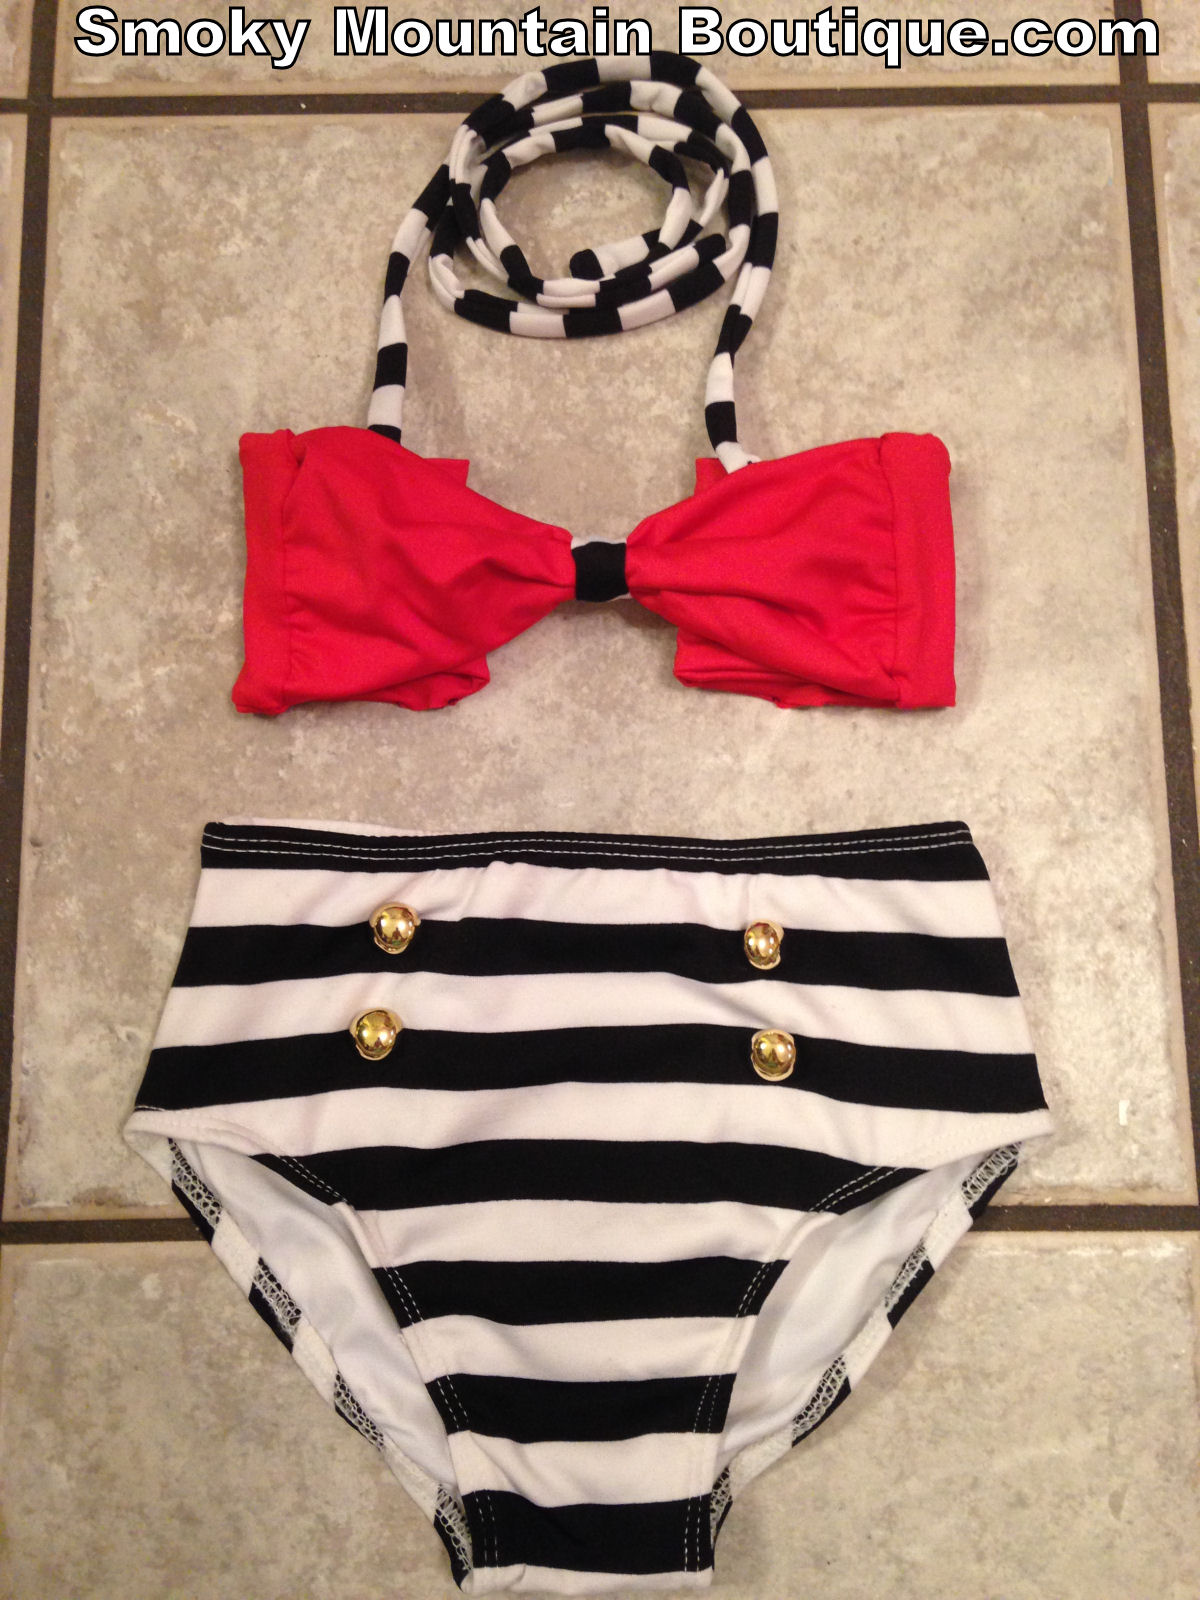 Red top and black & white striped bottoms (child's size)